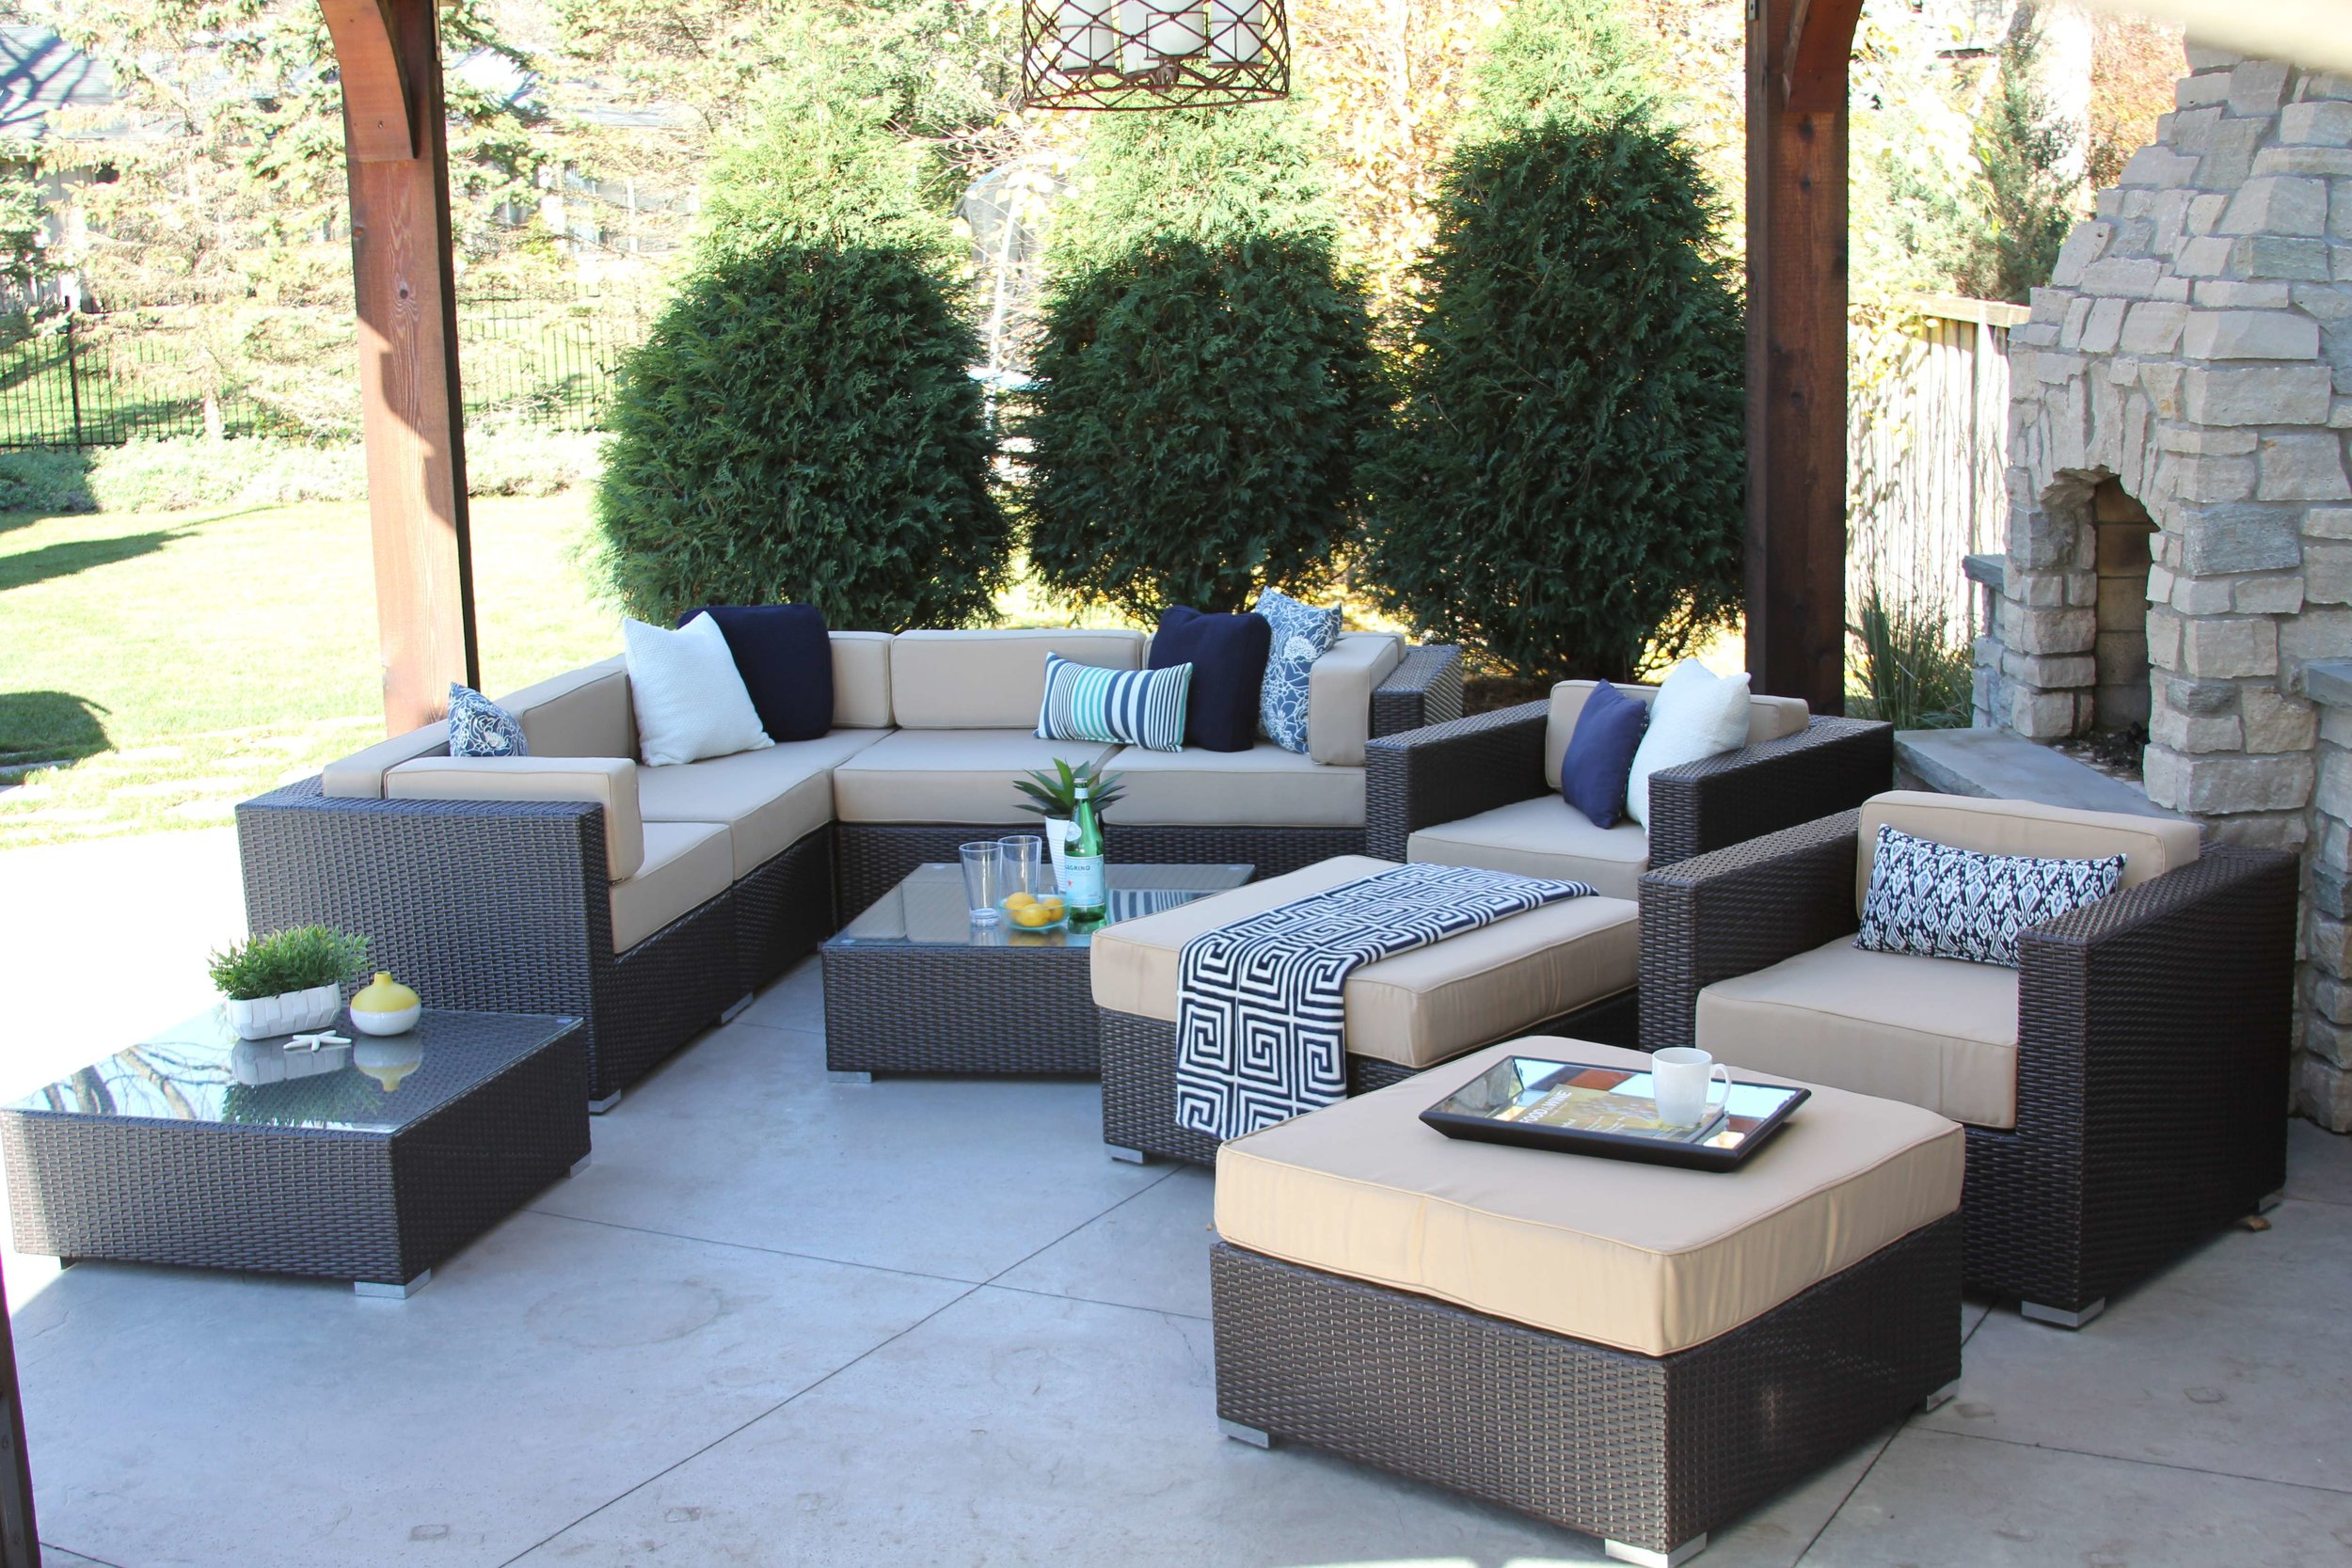 Victor 11 Piece Wicker Sofa Sectional With Two Club Chairs, Two Ottomans, and Two Coffee Tables